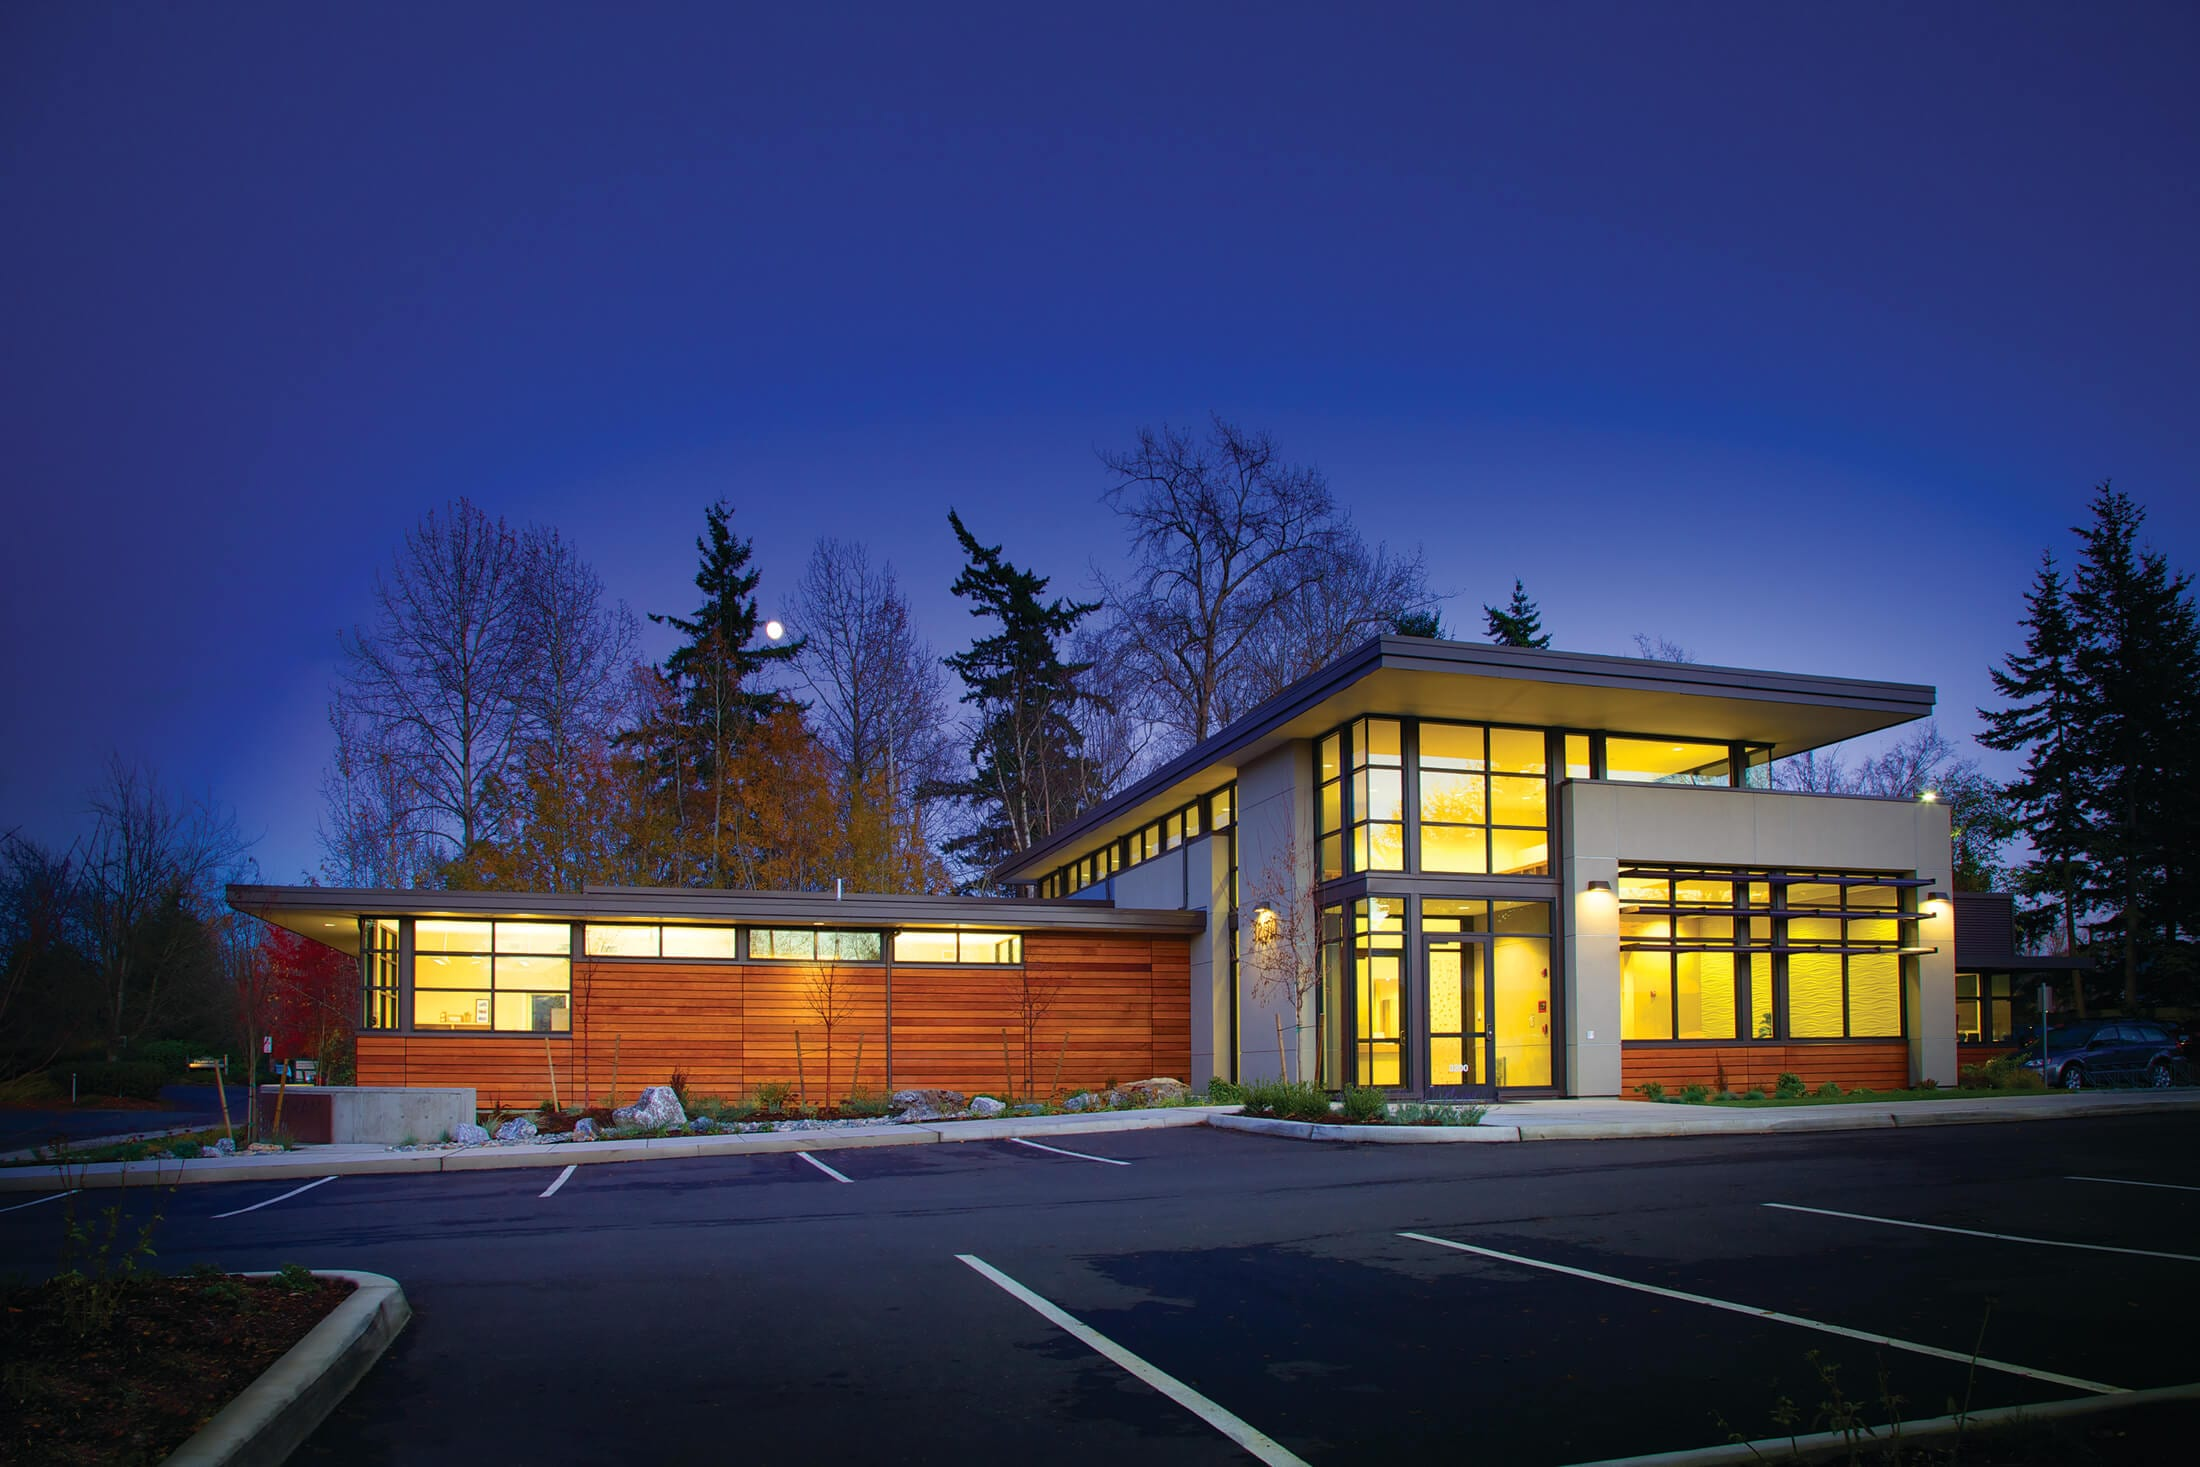 Expand Bellingham OBGYN Exterior at night